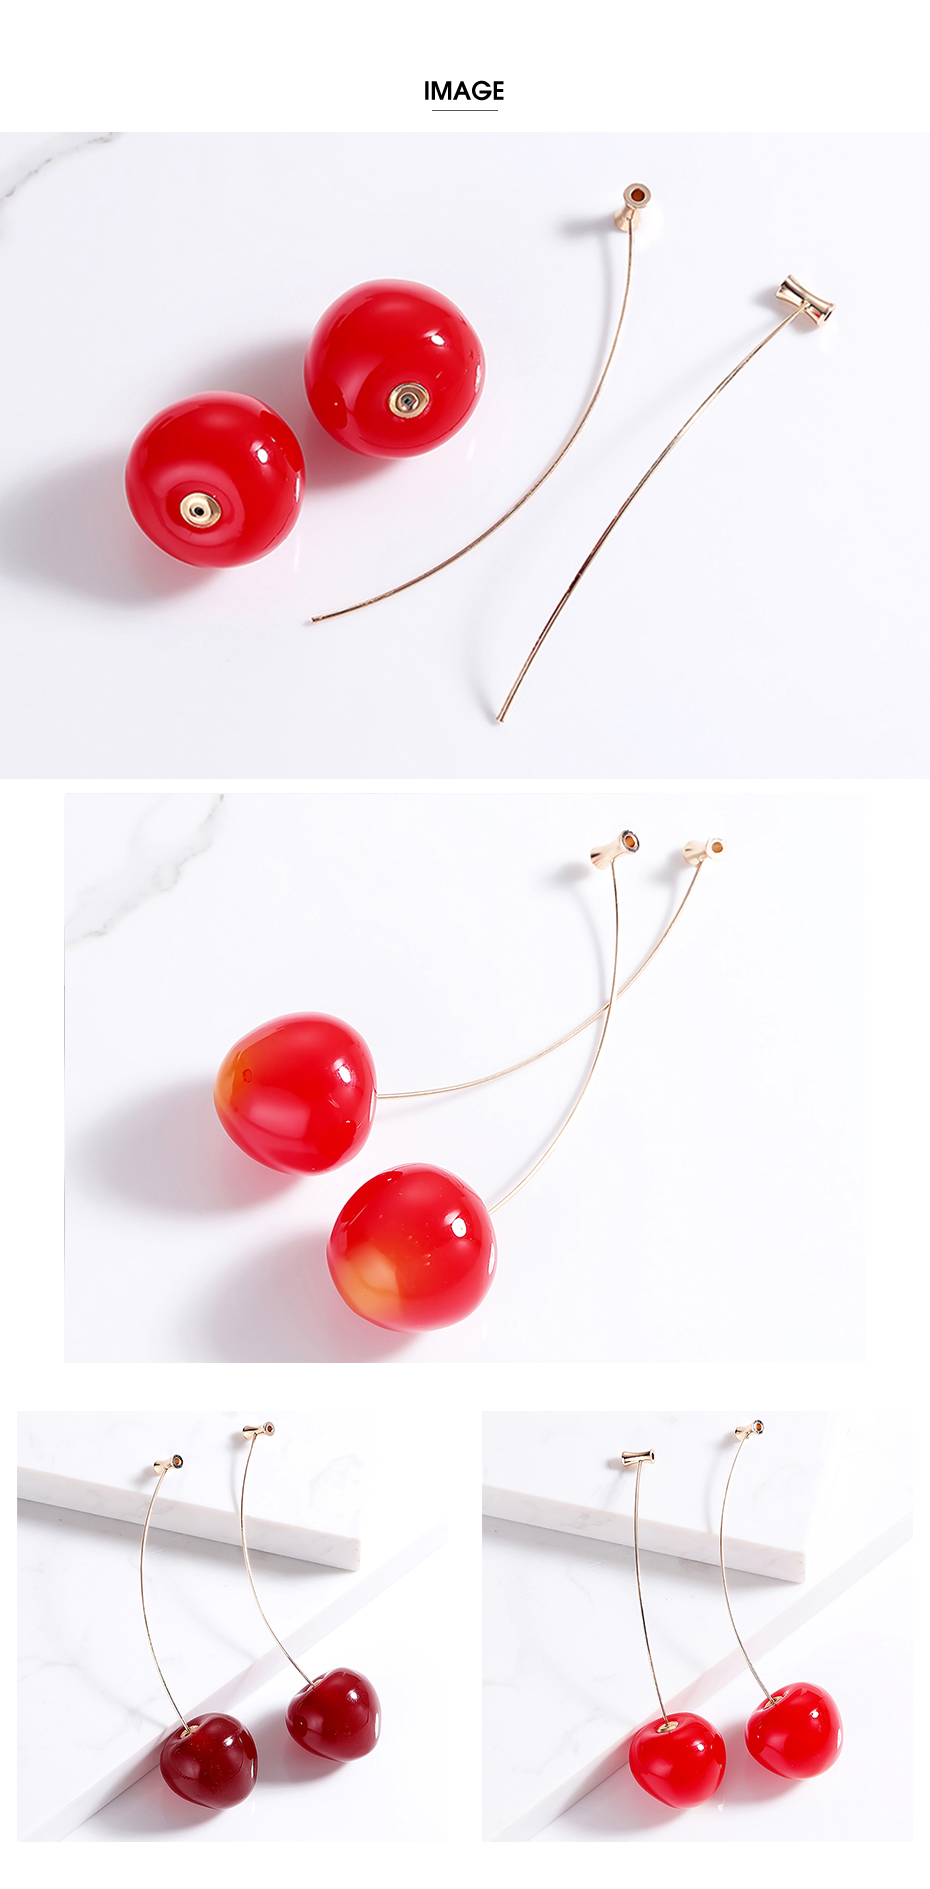 Cute Fruit Cherry Earrings Acrylic Long Red Earrings For Women Removable Elegant Jewelry Wedding Cherry Accessories Jewellery 5